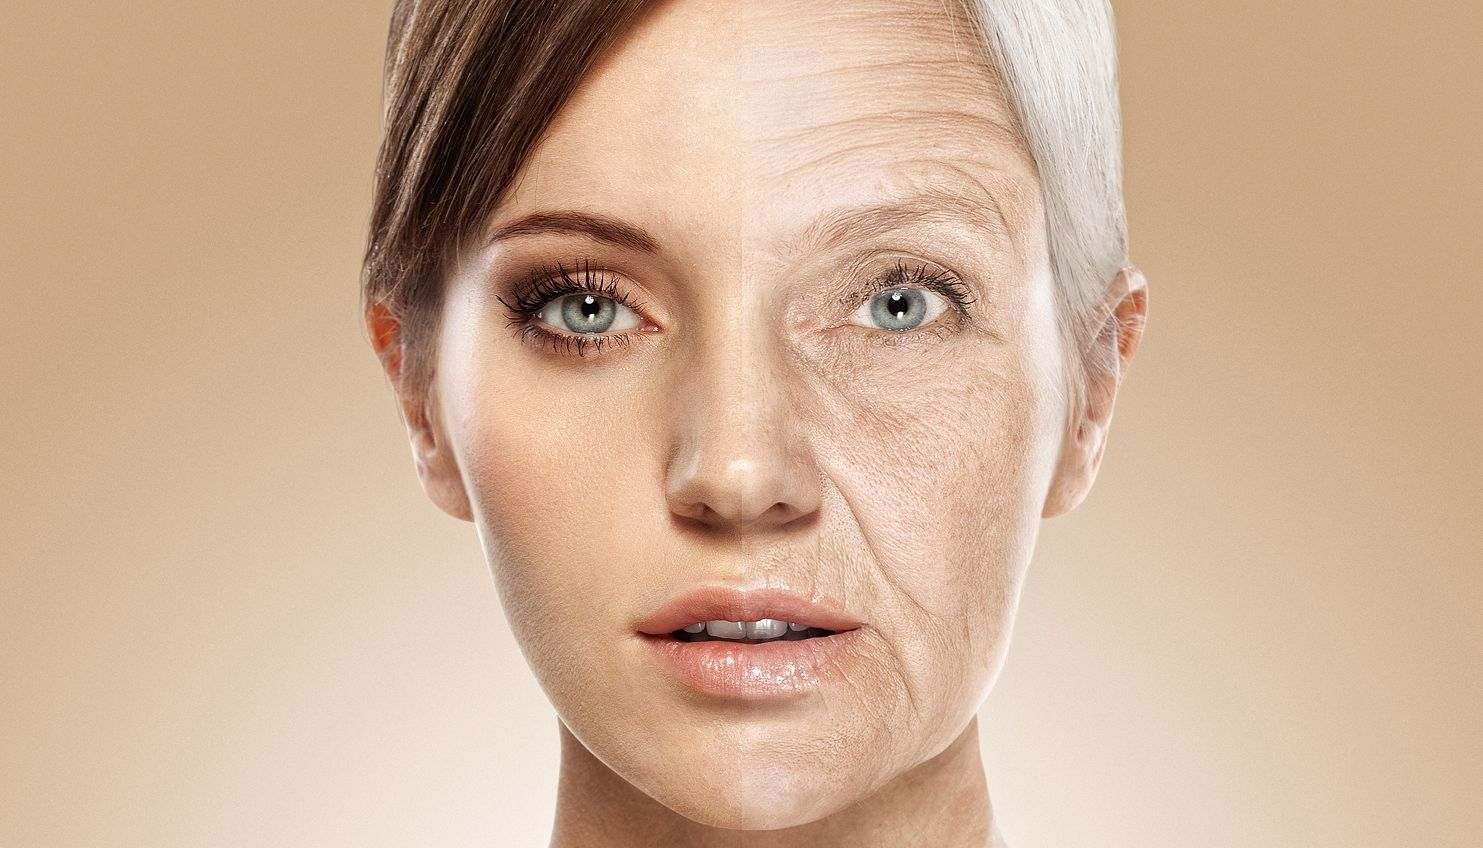 Scientists believe that the aging process cannot be stopped from a mathematical point of view